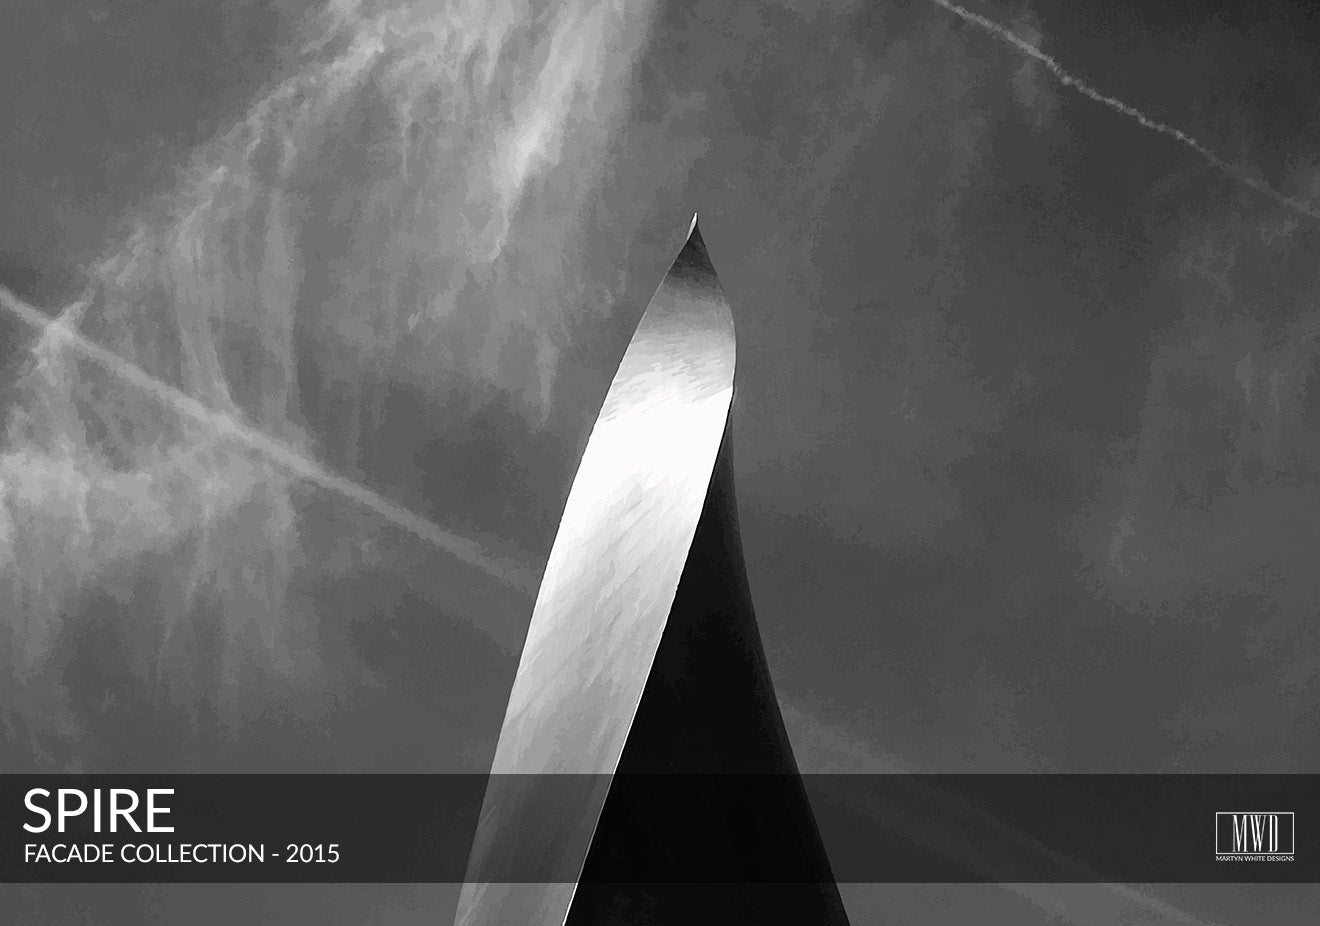 Sculptural modern spire photography